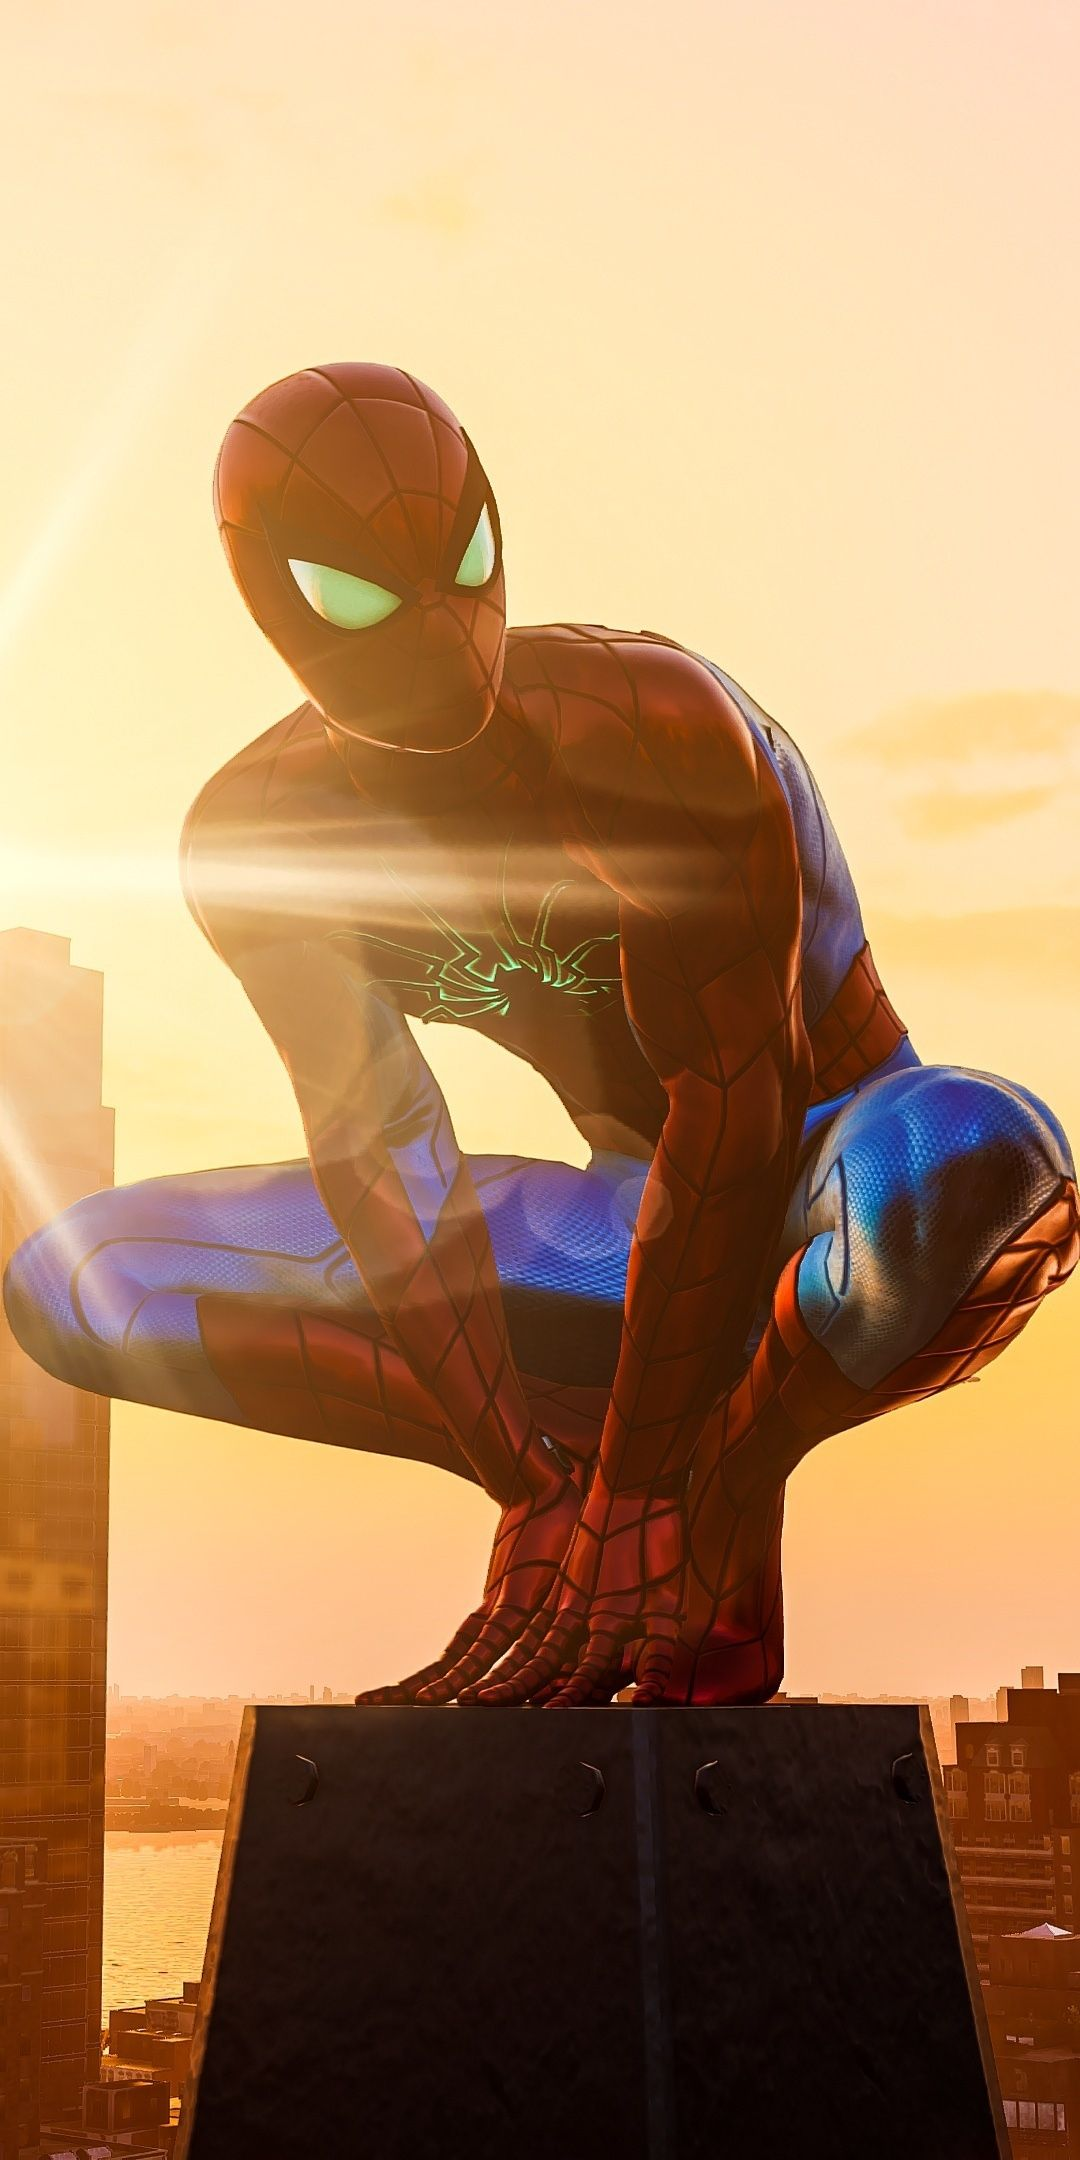 1080x2160 Spiderman PS4, game, 2020 wallpaper in 2020